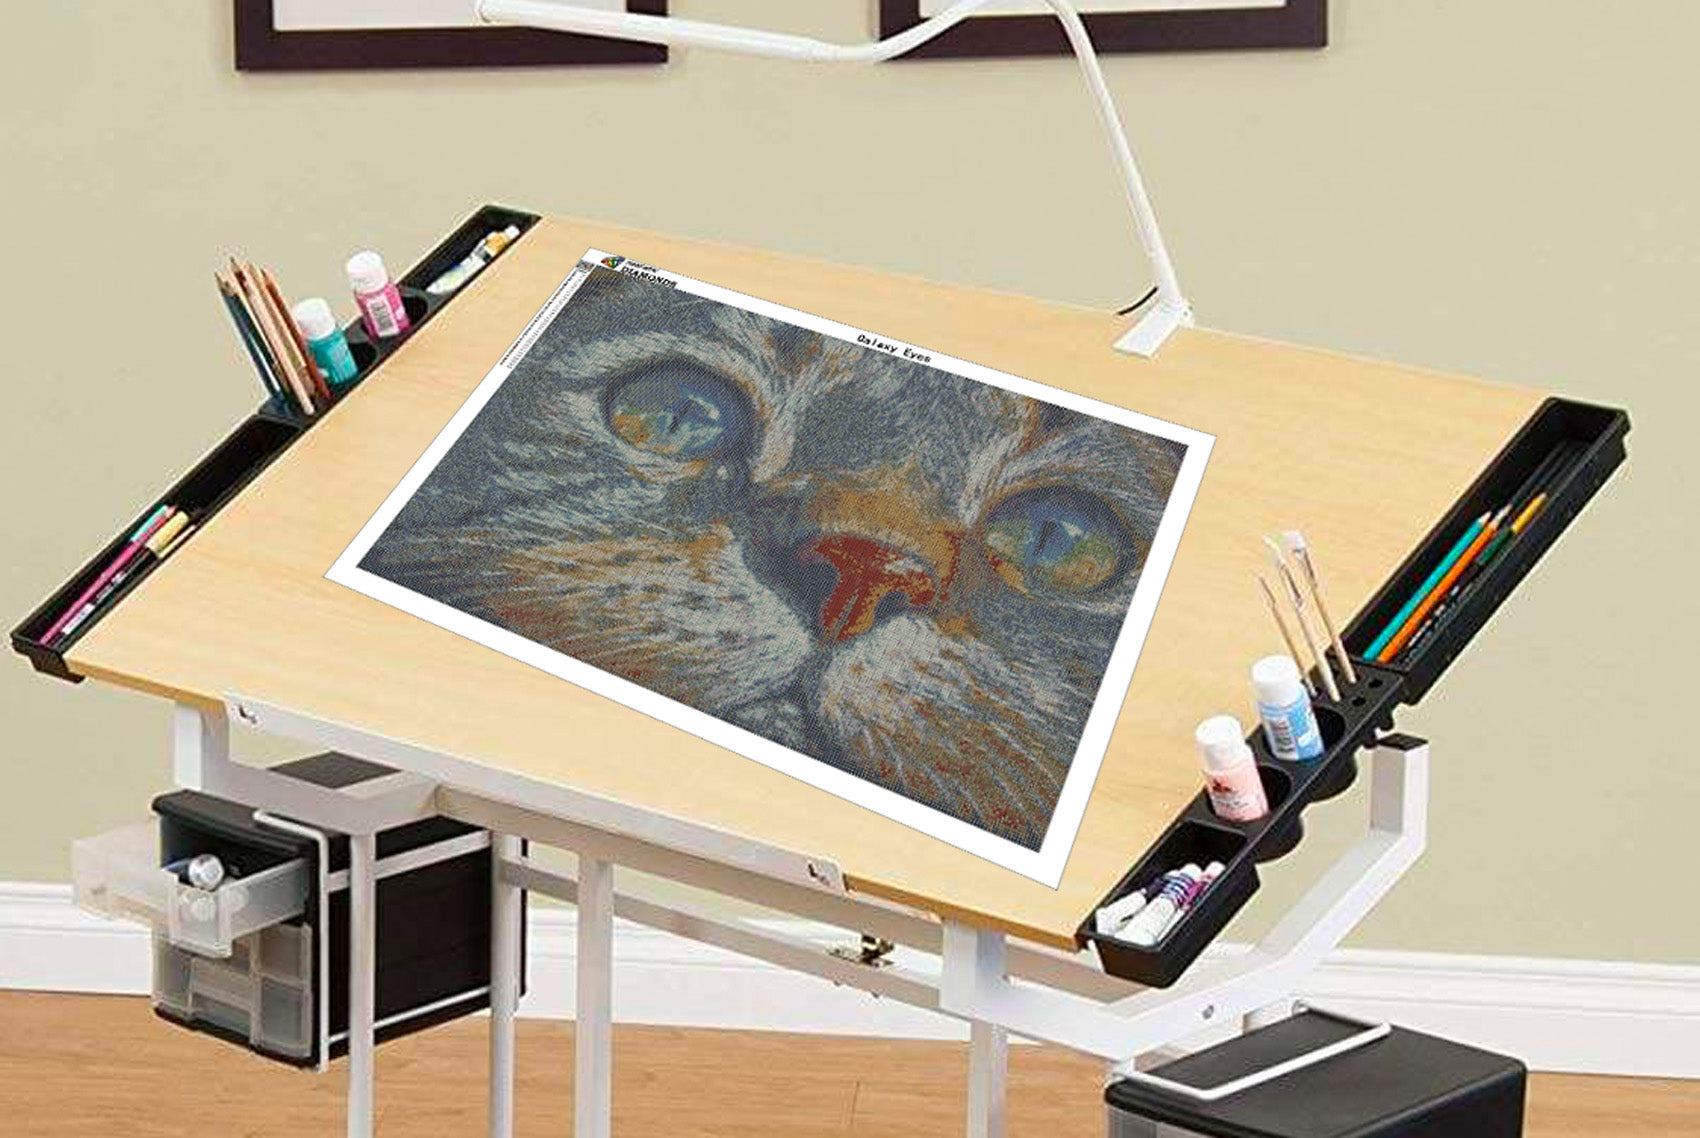 RANKED: The 7 Hottest Craft Tables For Diamond Painting